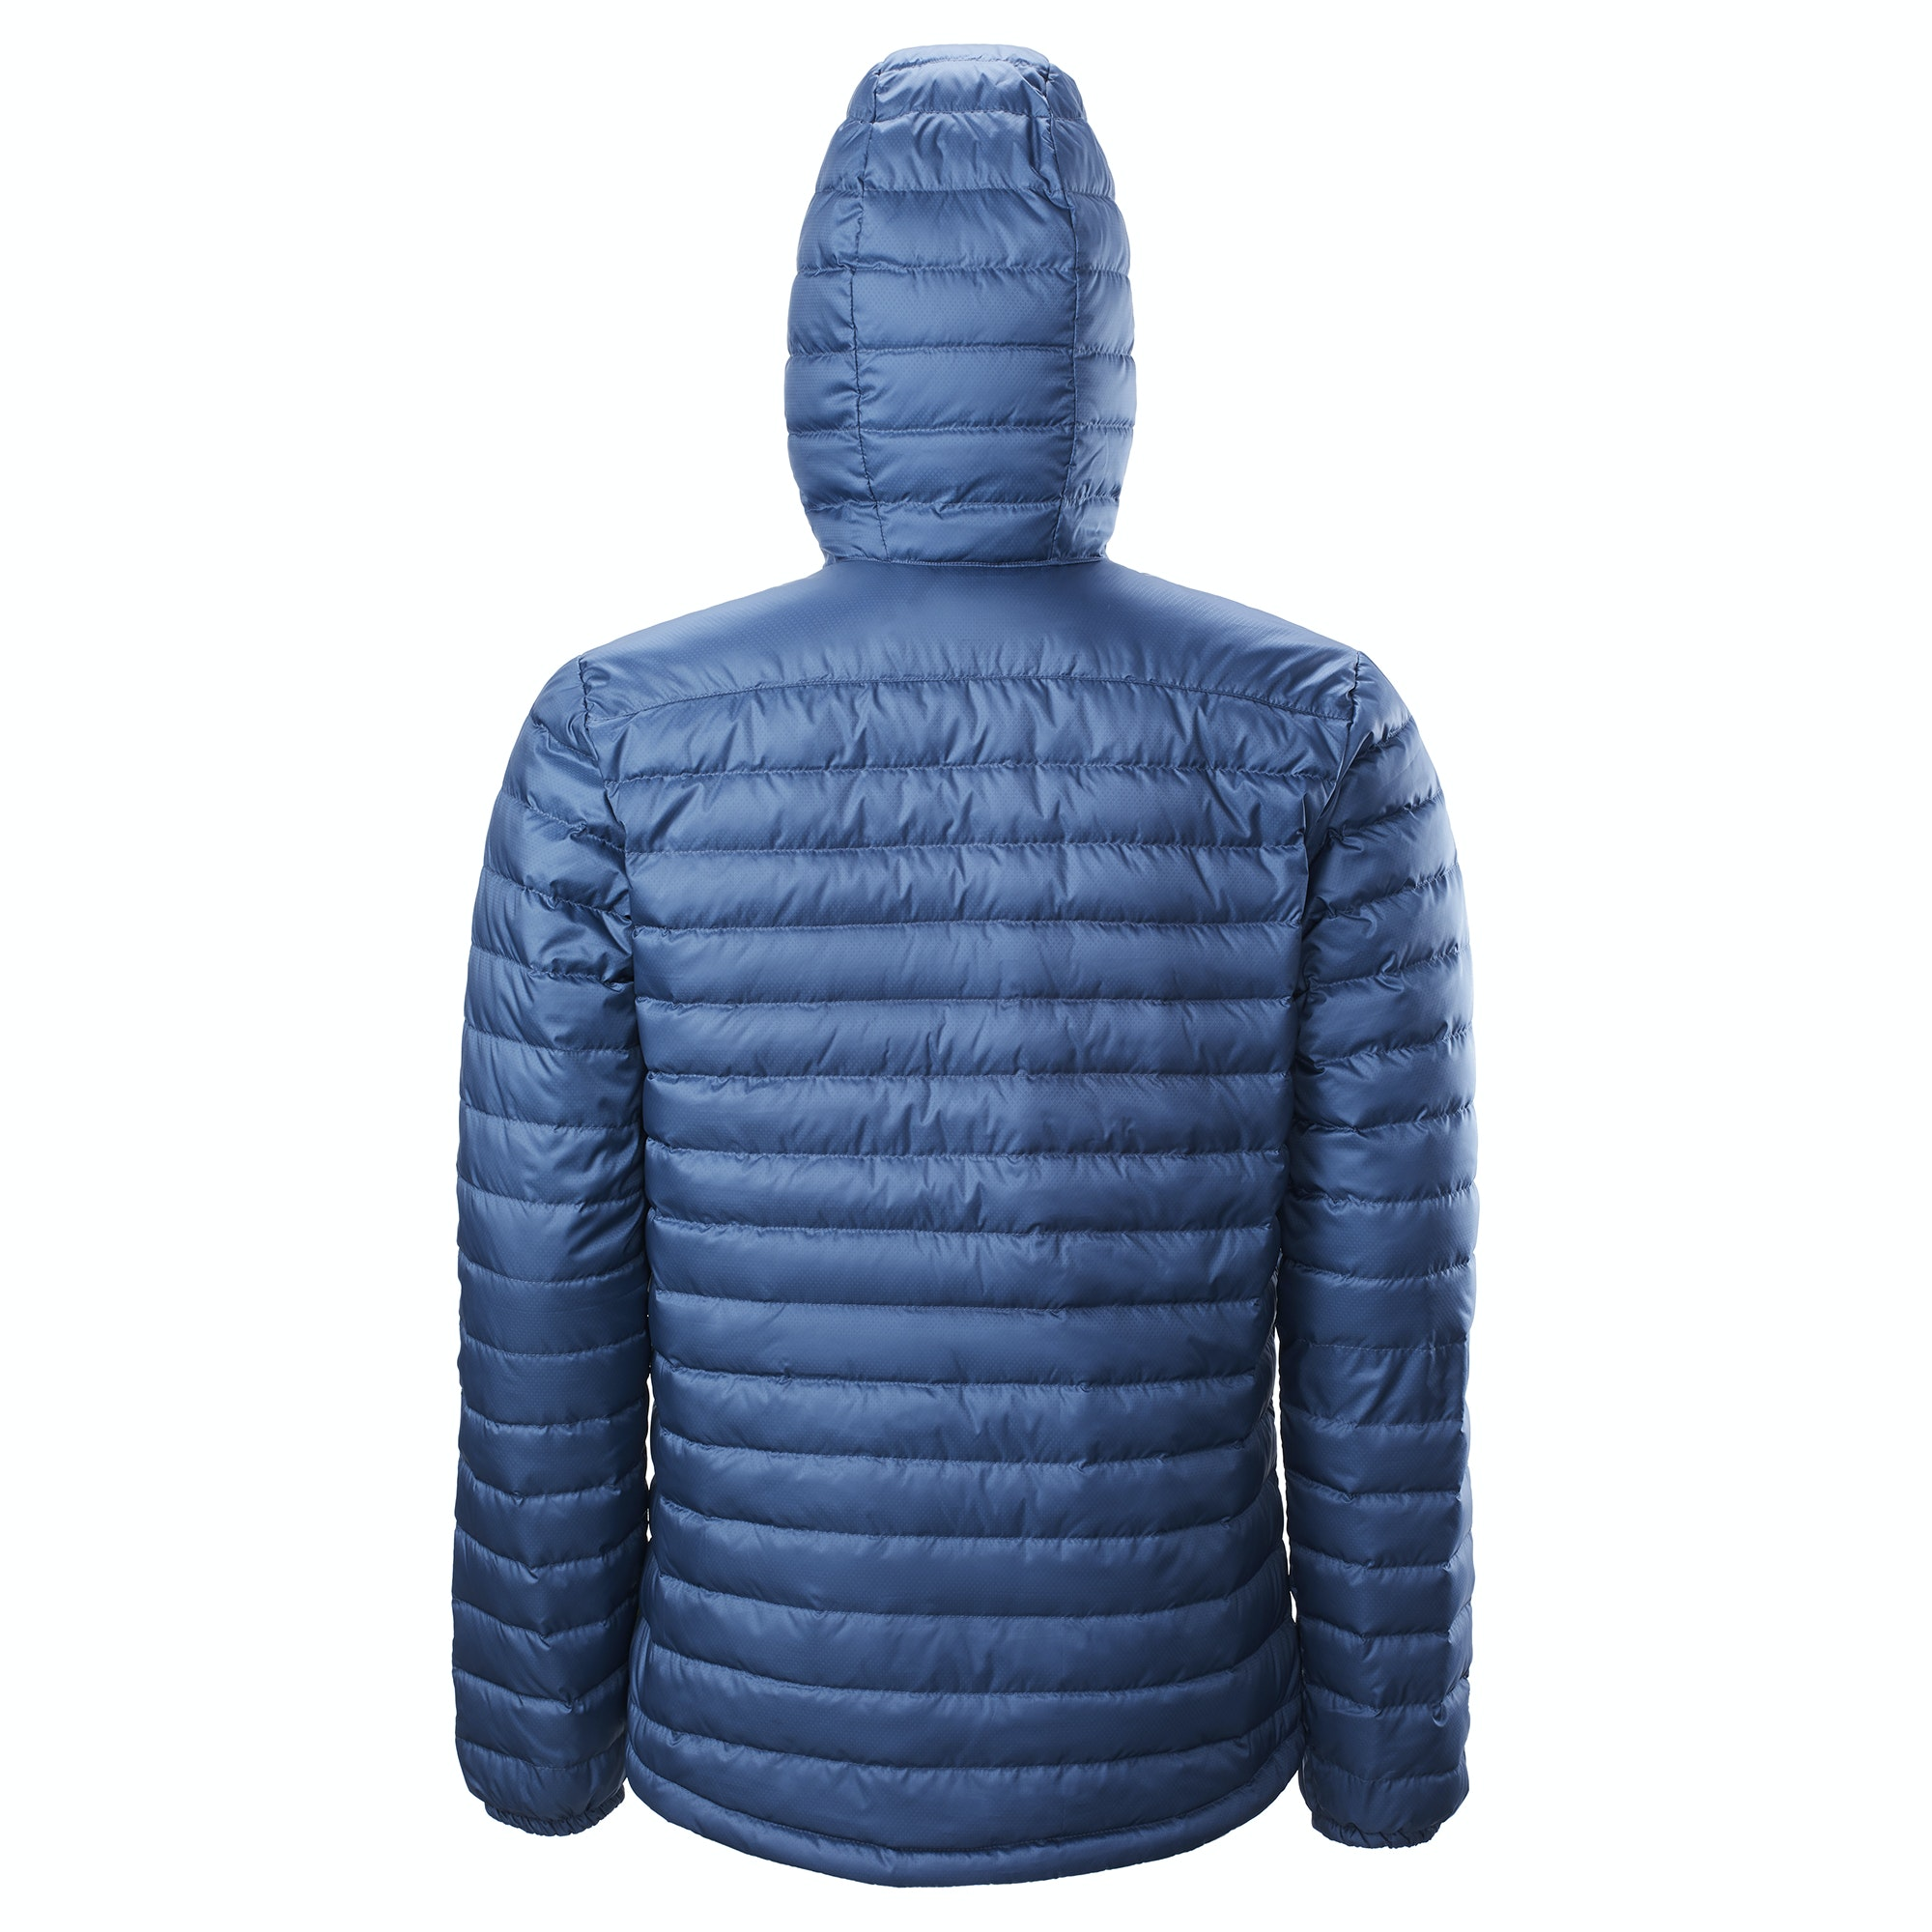 NEW-Kathmandu-Heli-Hooded-Lightweight-Compact-Water-Repellent-Warm-Men-Down thumbnail 14